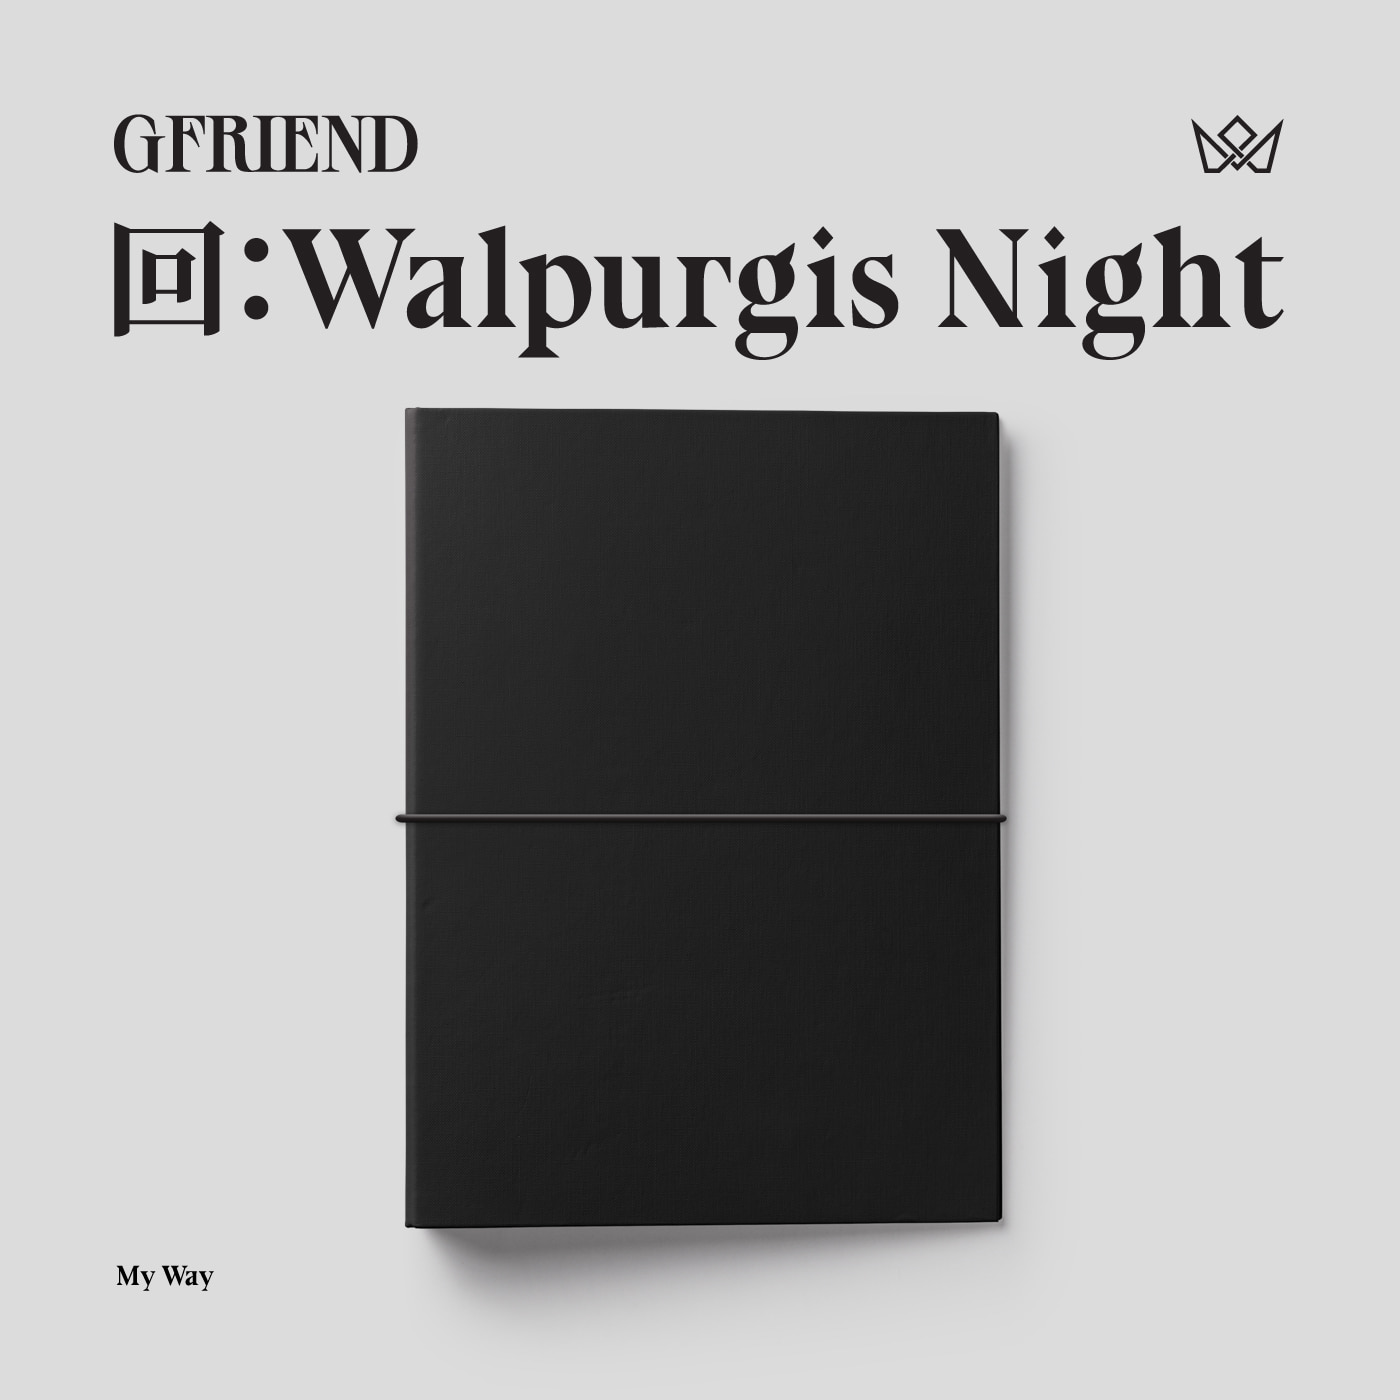 [PRE-ORDER] GFRIEND - Album [回:Walpurgis Night] (My Way Ver.)케이팝스토어(kpop store)